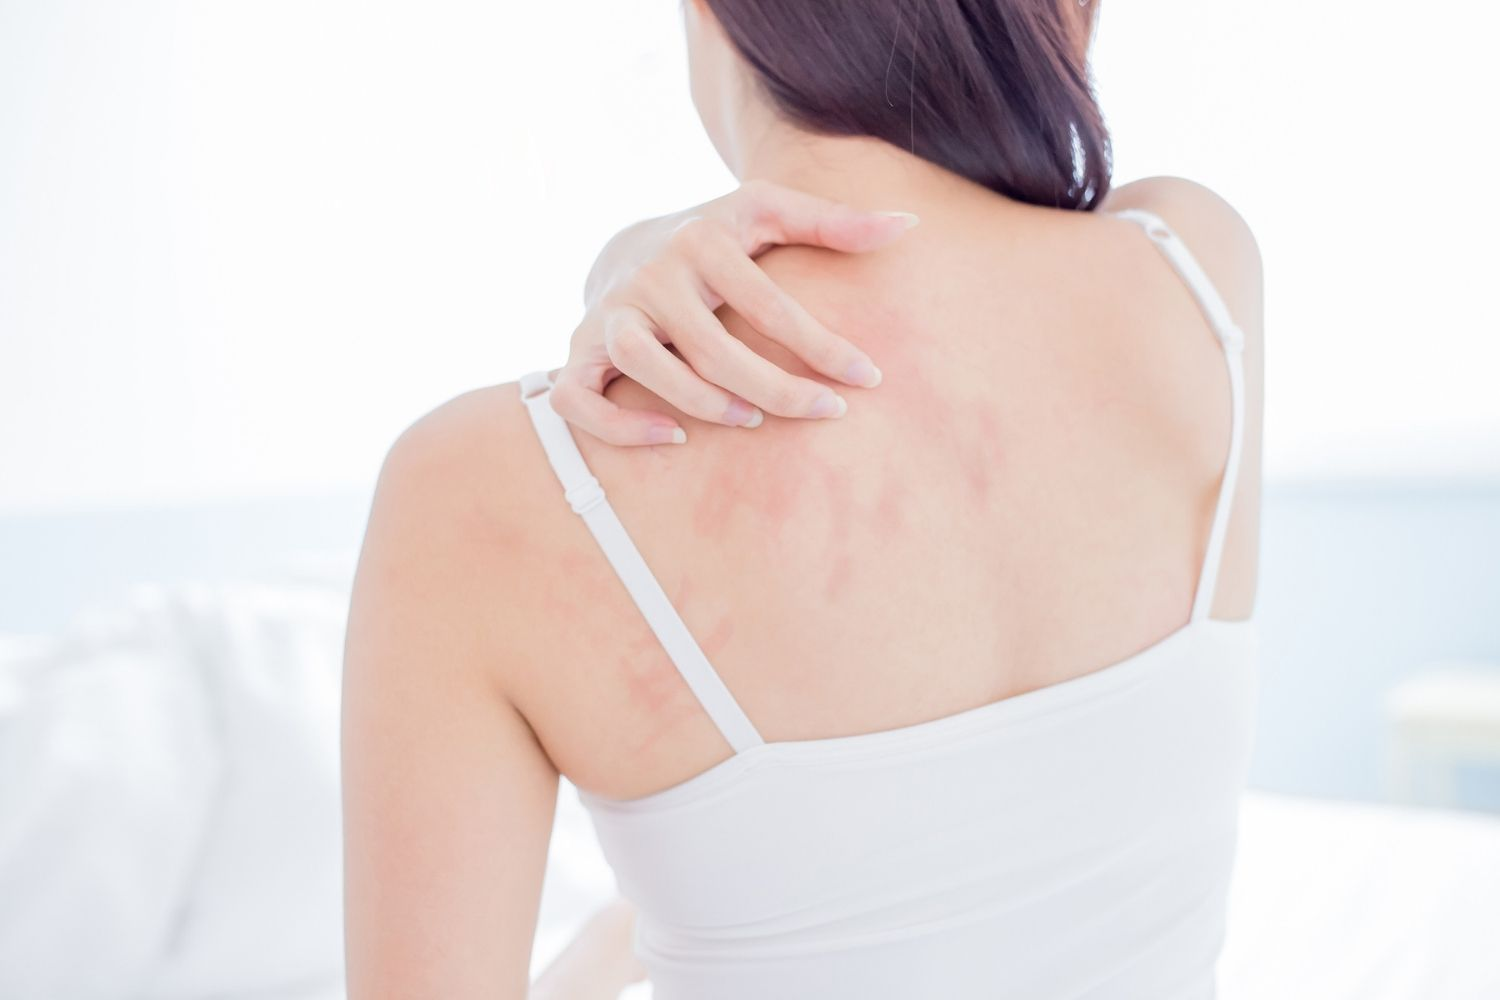 Beat eczema – Look & feel Great! Now is the time to put a stop to the intolerable pain of eczema!